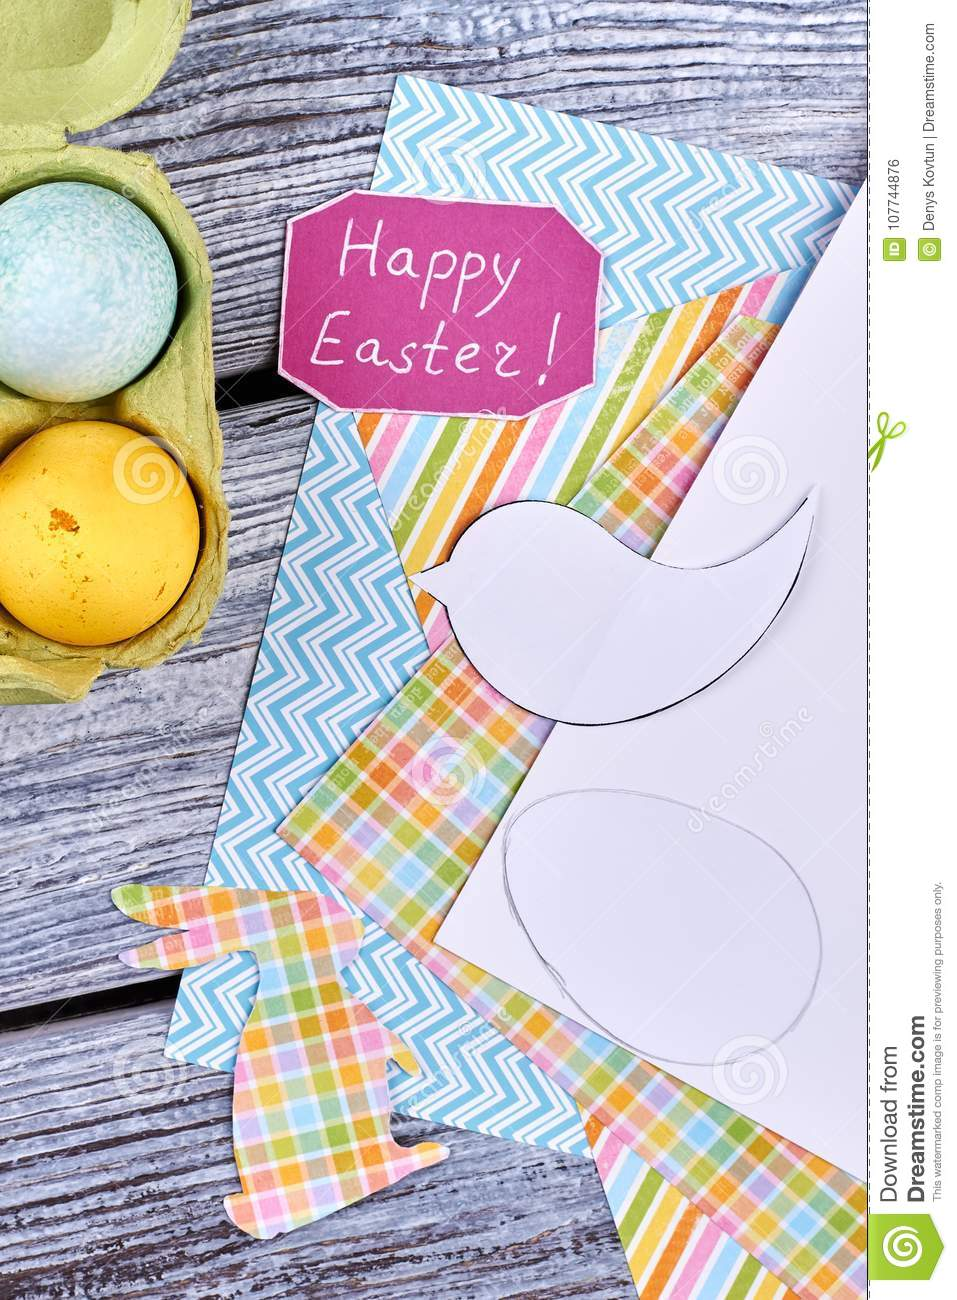 Happy Easter Card And Patterned Paper Stock Photo Image Of